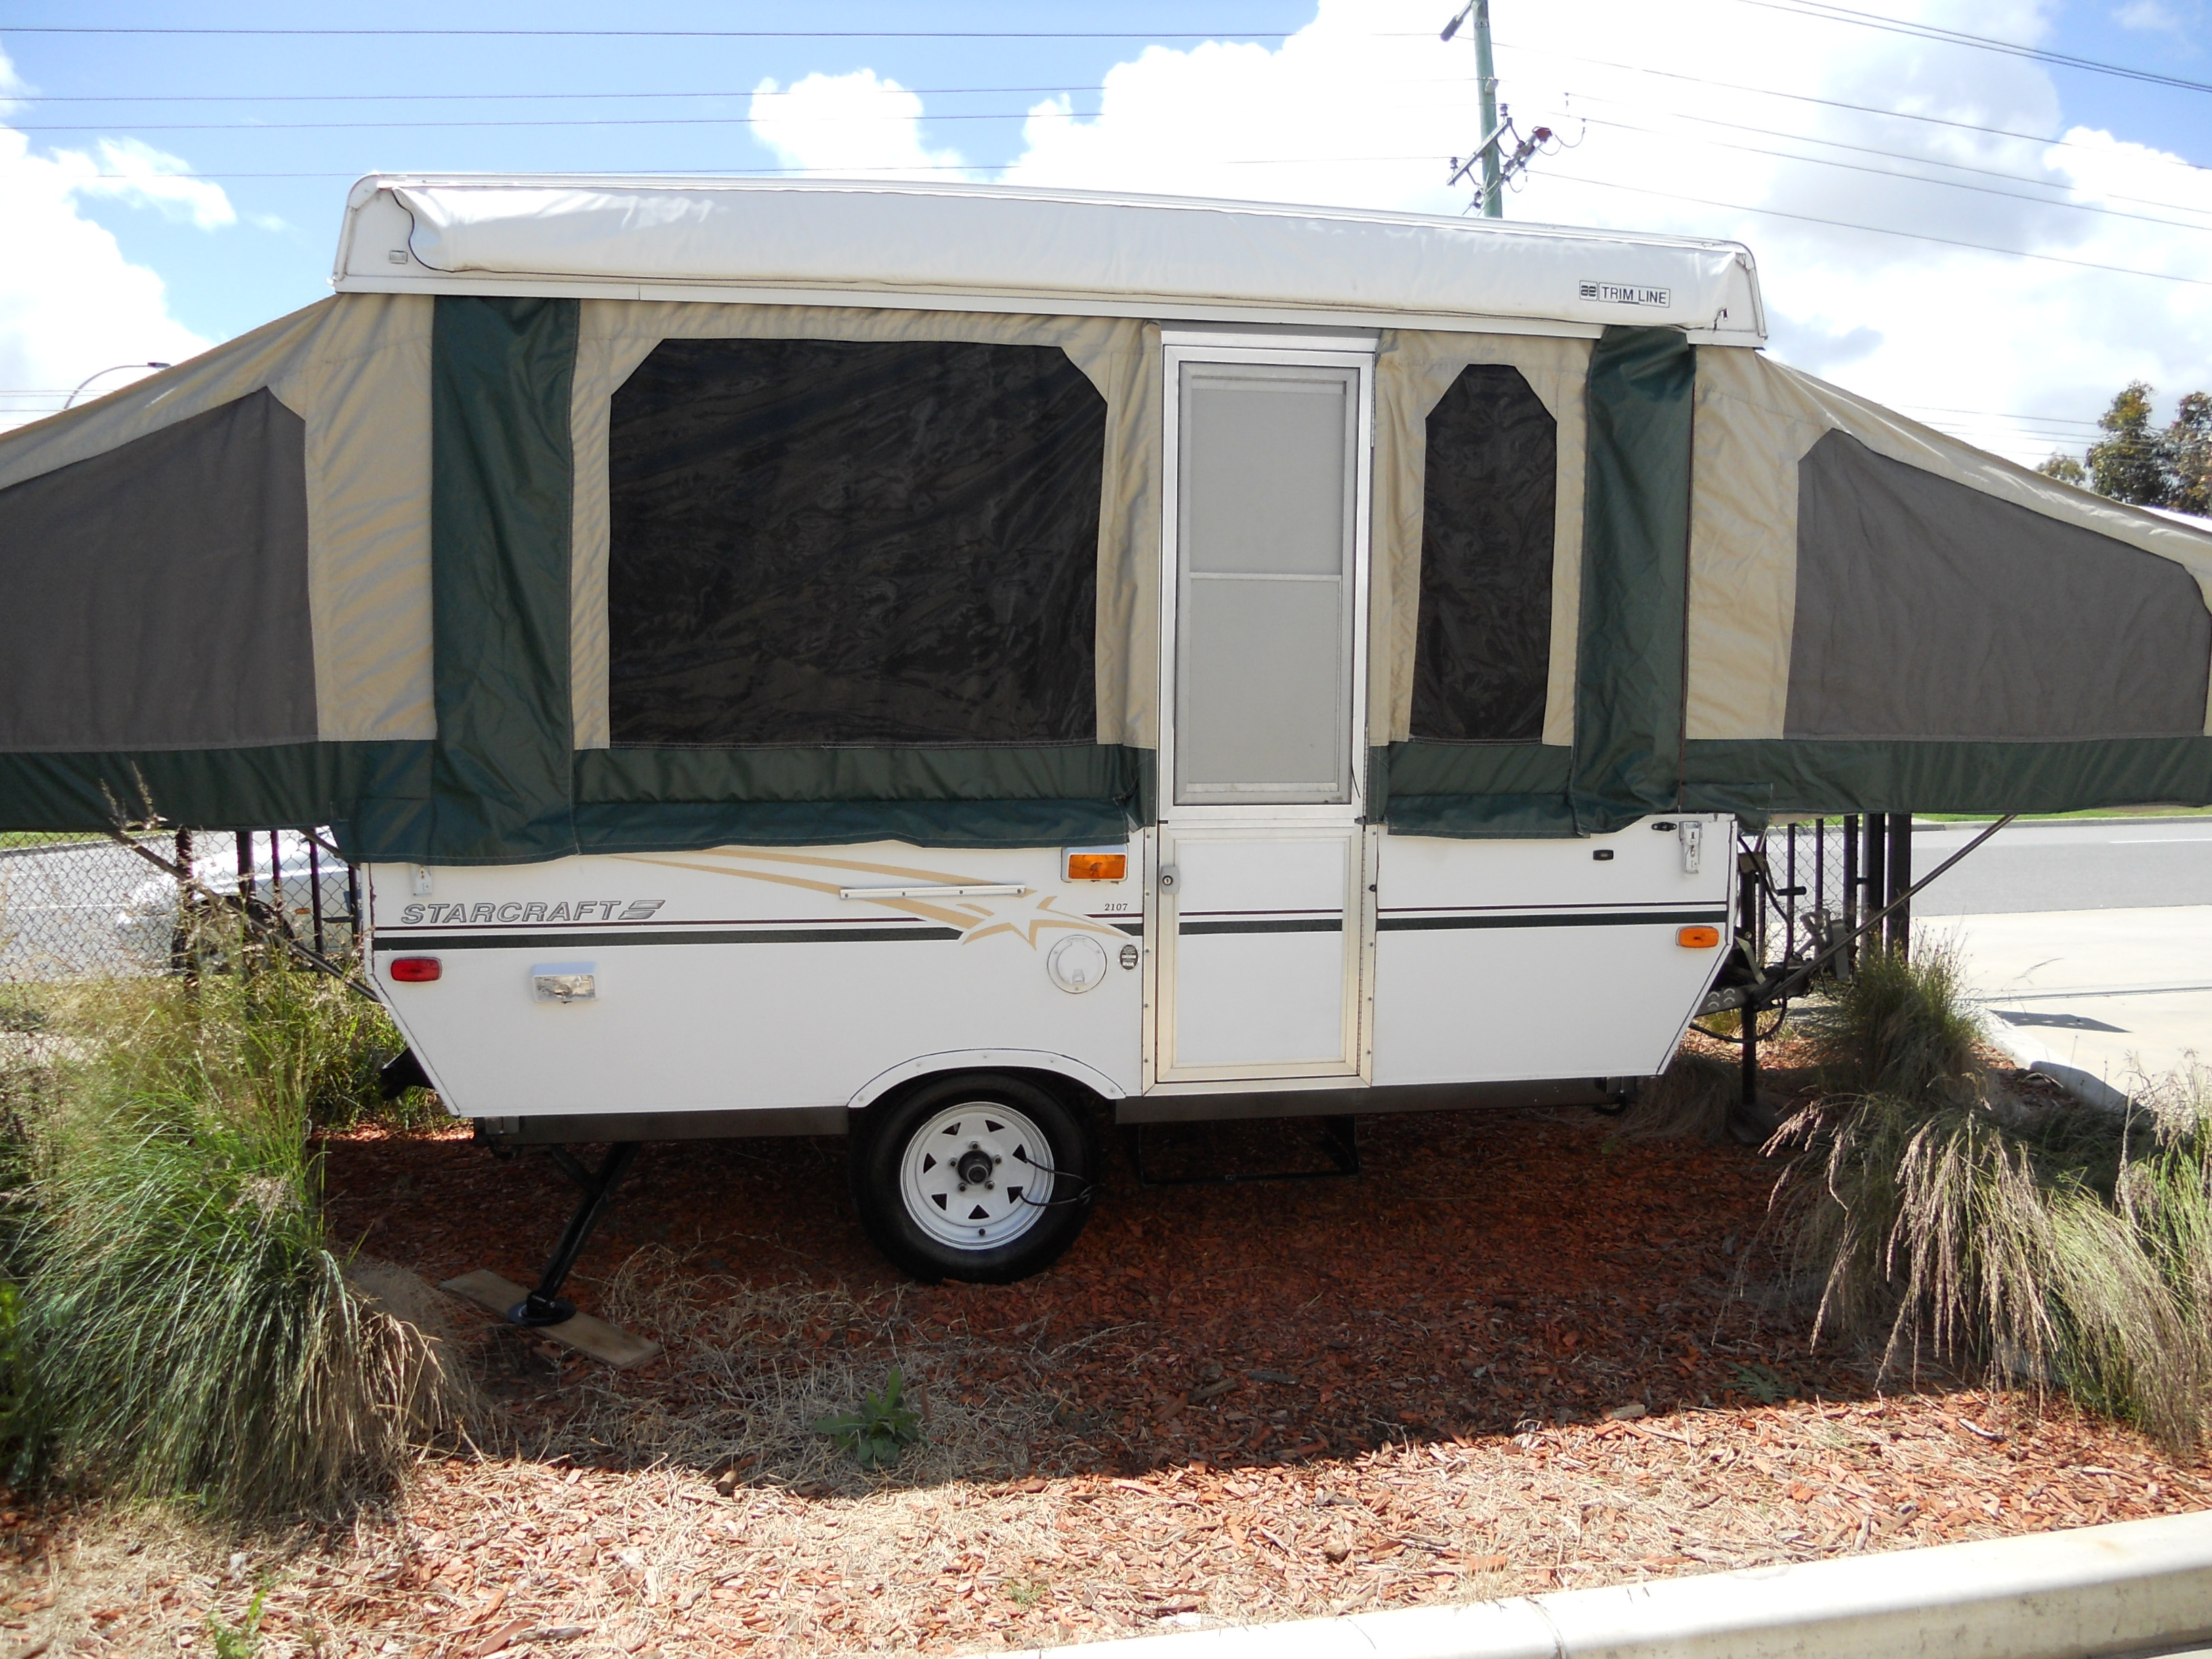 Fantastic According The City Code, No Person Shall Park A Vehicle Pertains To Trailers, RVs, Campers, Boats, Etc Upon Any Roadway For The Purpose Of 1 Displaying The Vehicle For Sale 2  Please Contact The Victoria Police Department At 361573